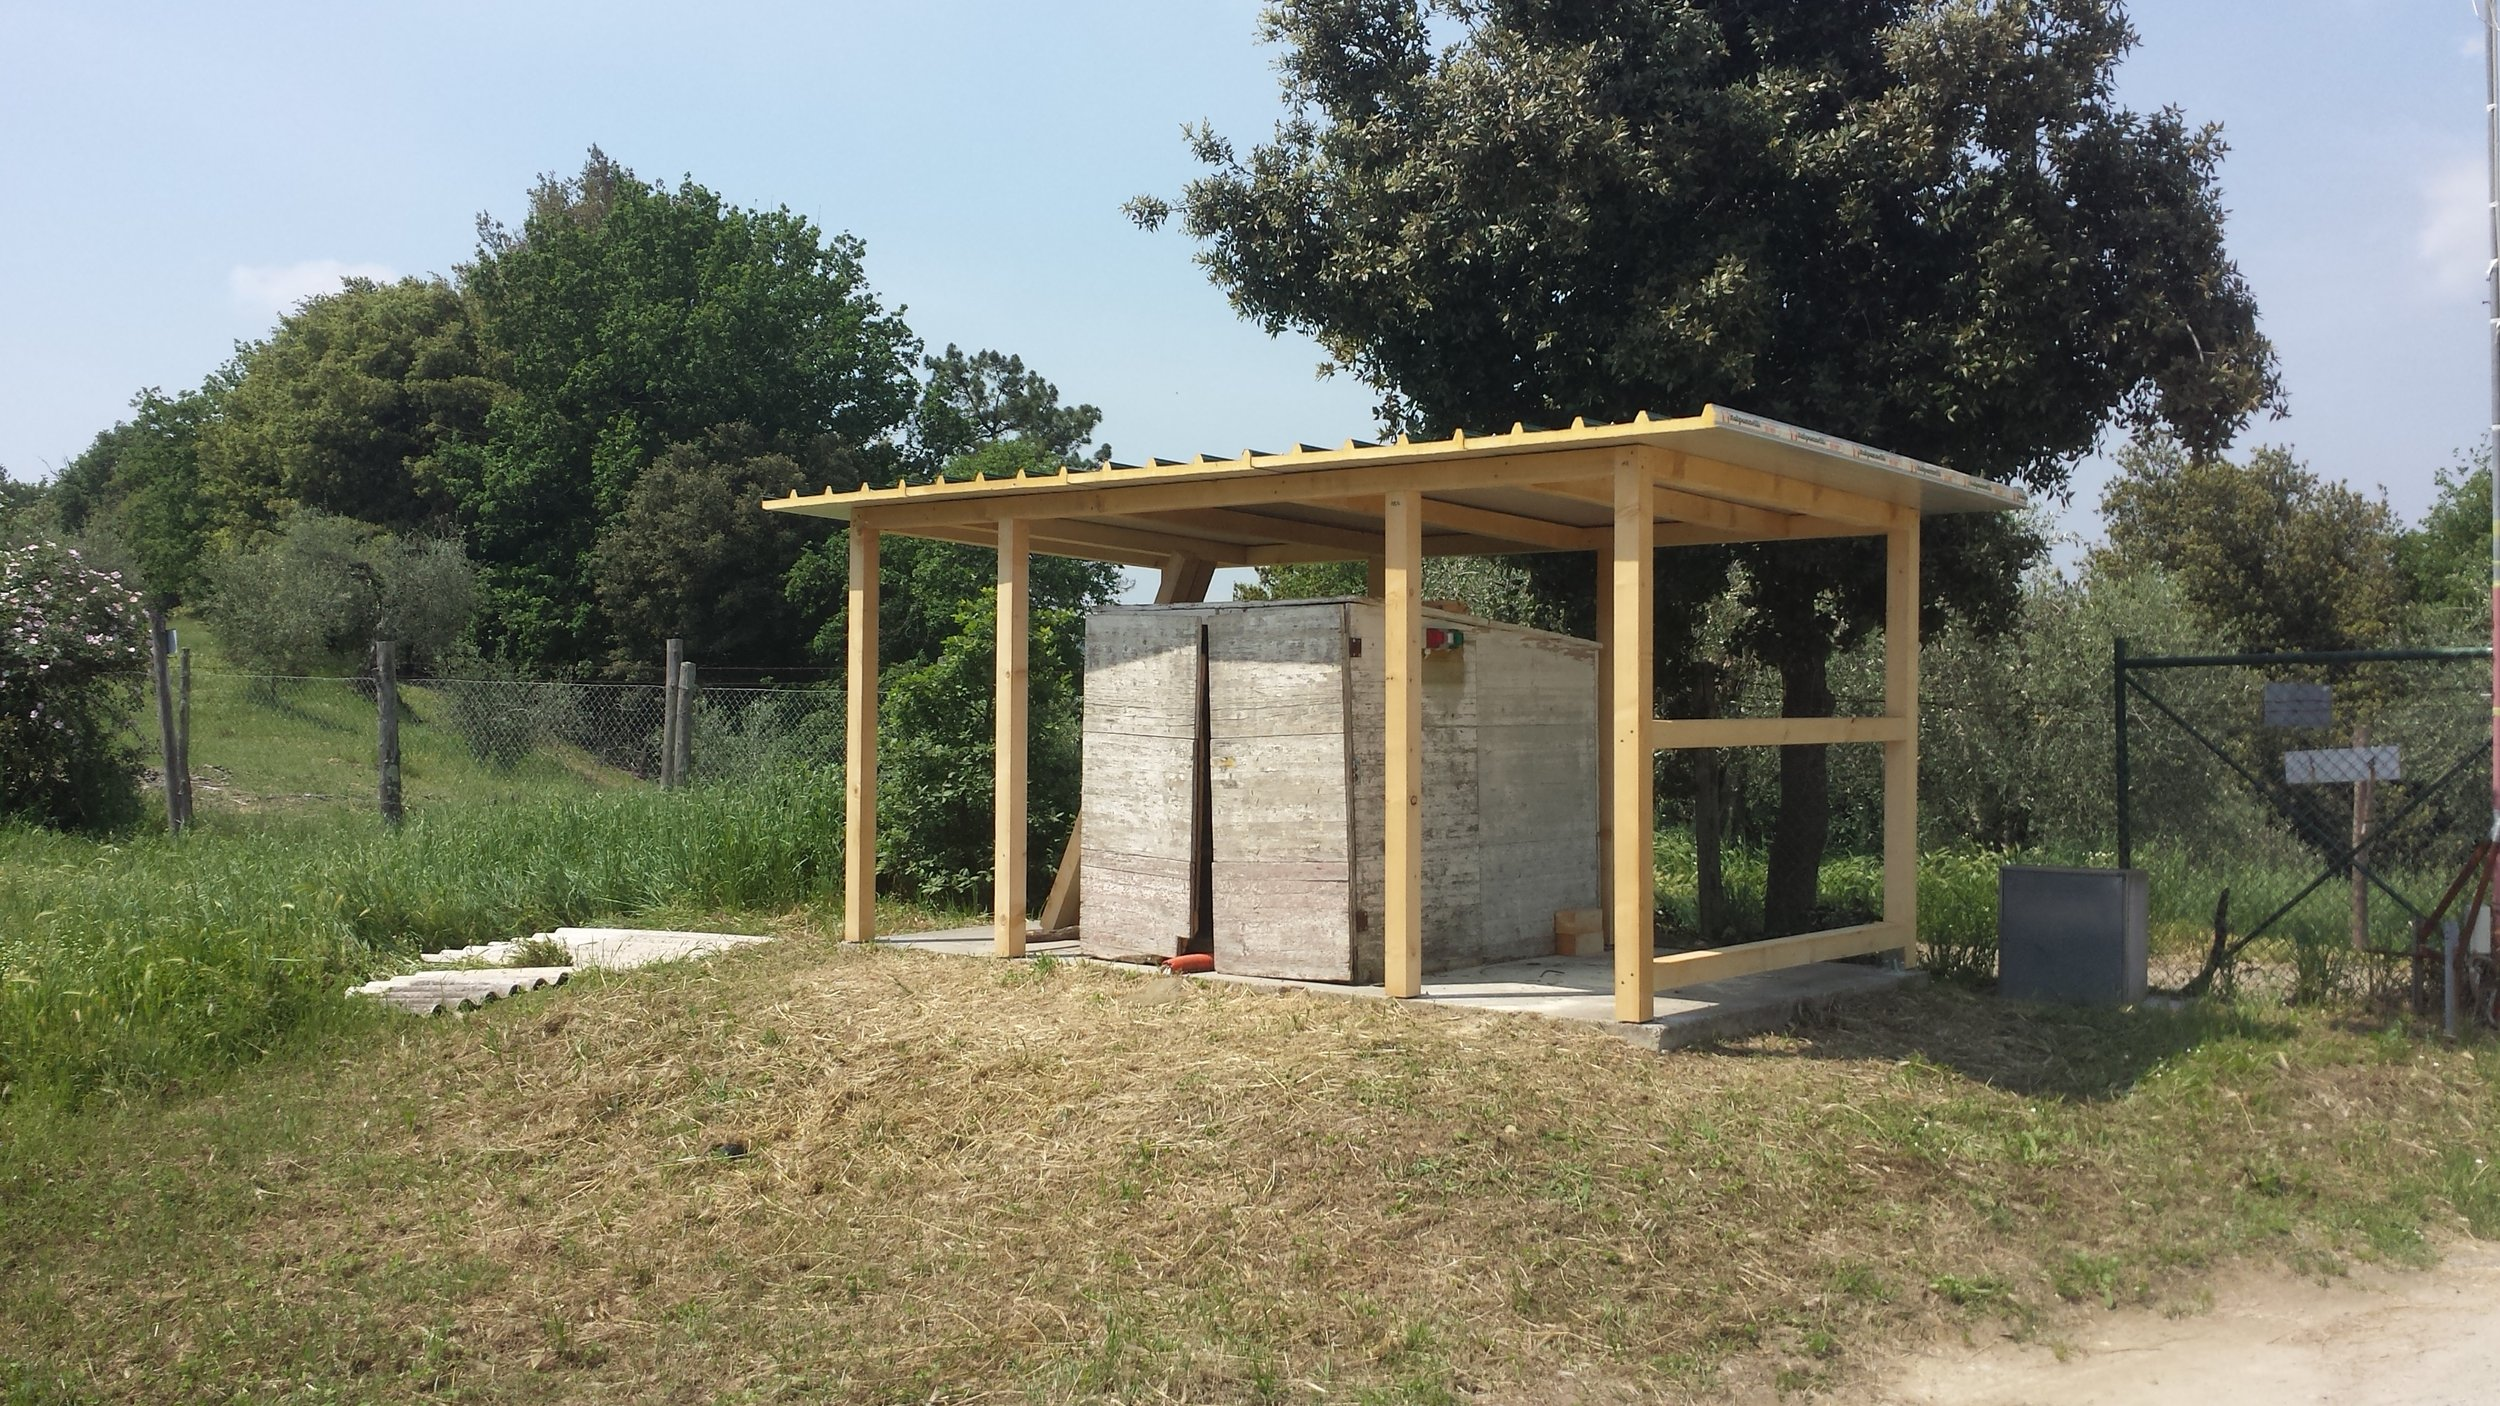 """The small shack that hosted the water pumps at """"Il Poggio"""" was in much need for a replacement...and it's coming up!This picture shows the work in progress..."""